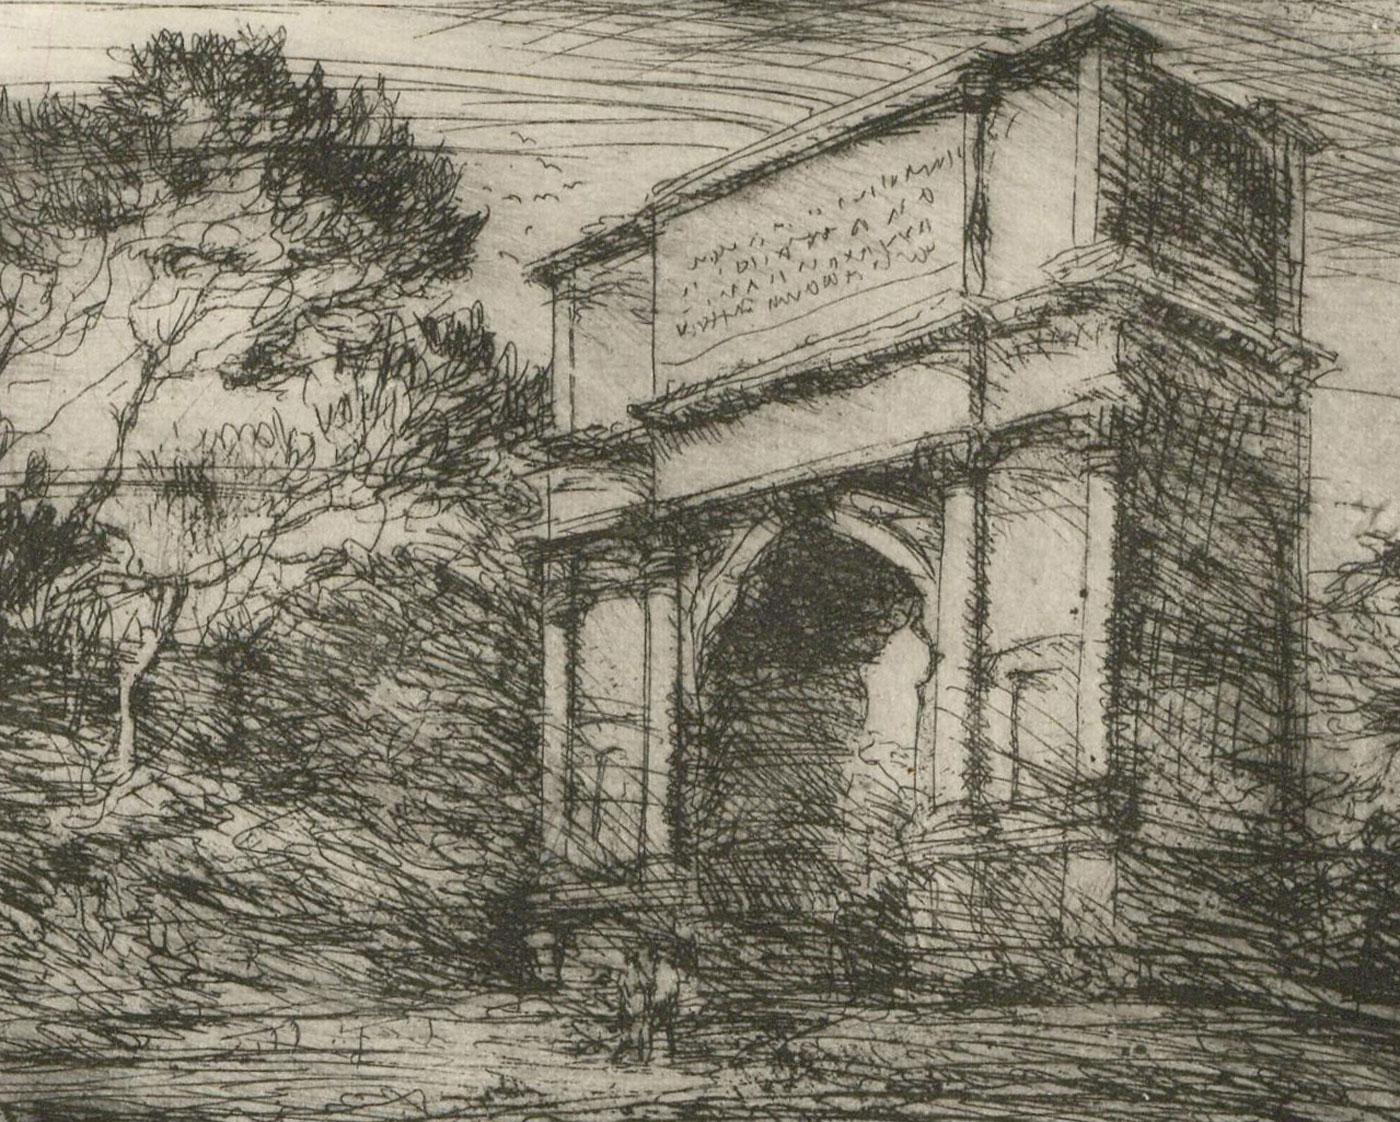 Ronald Olley (b.1923) - c. 2000 Etching, Arch of Titus, Rome